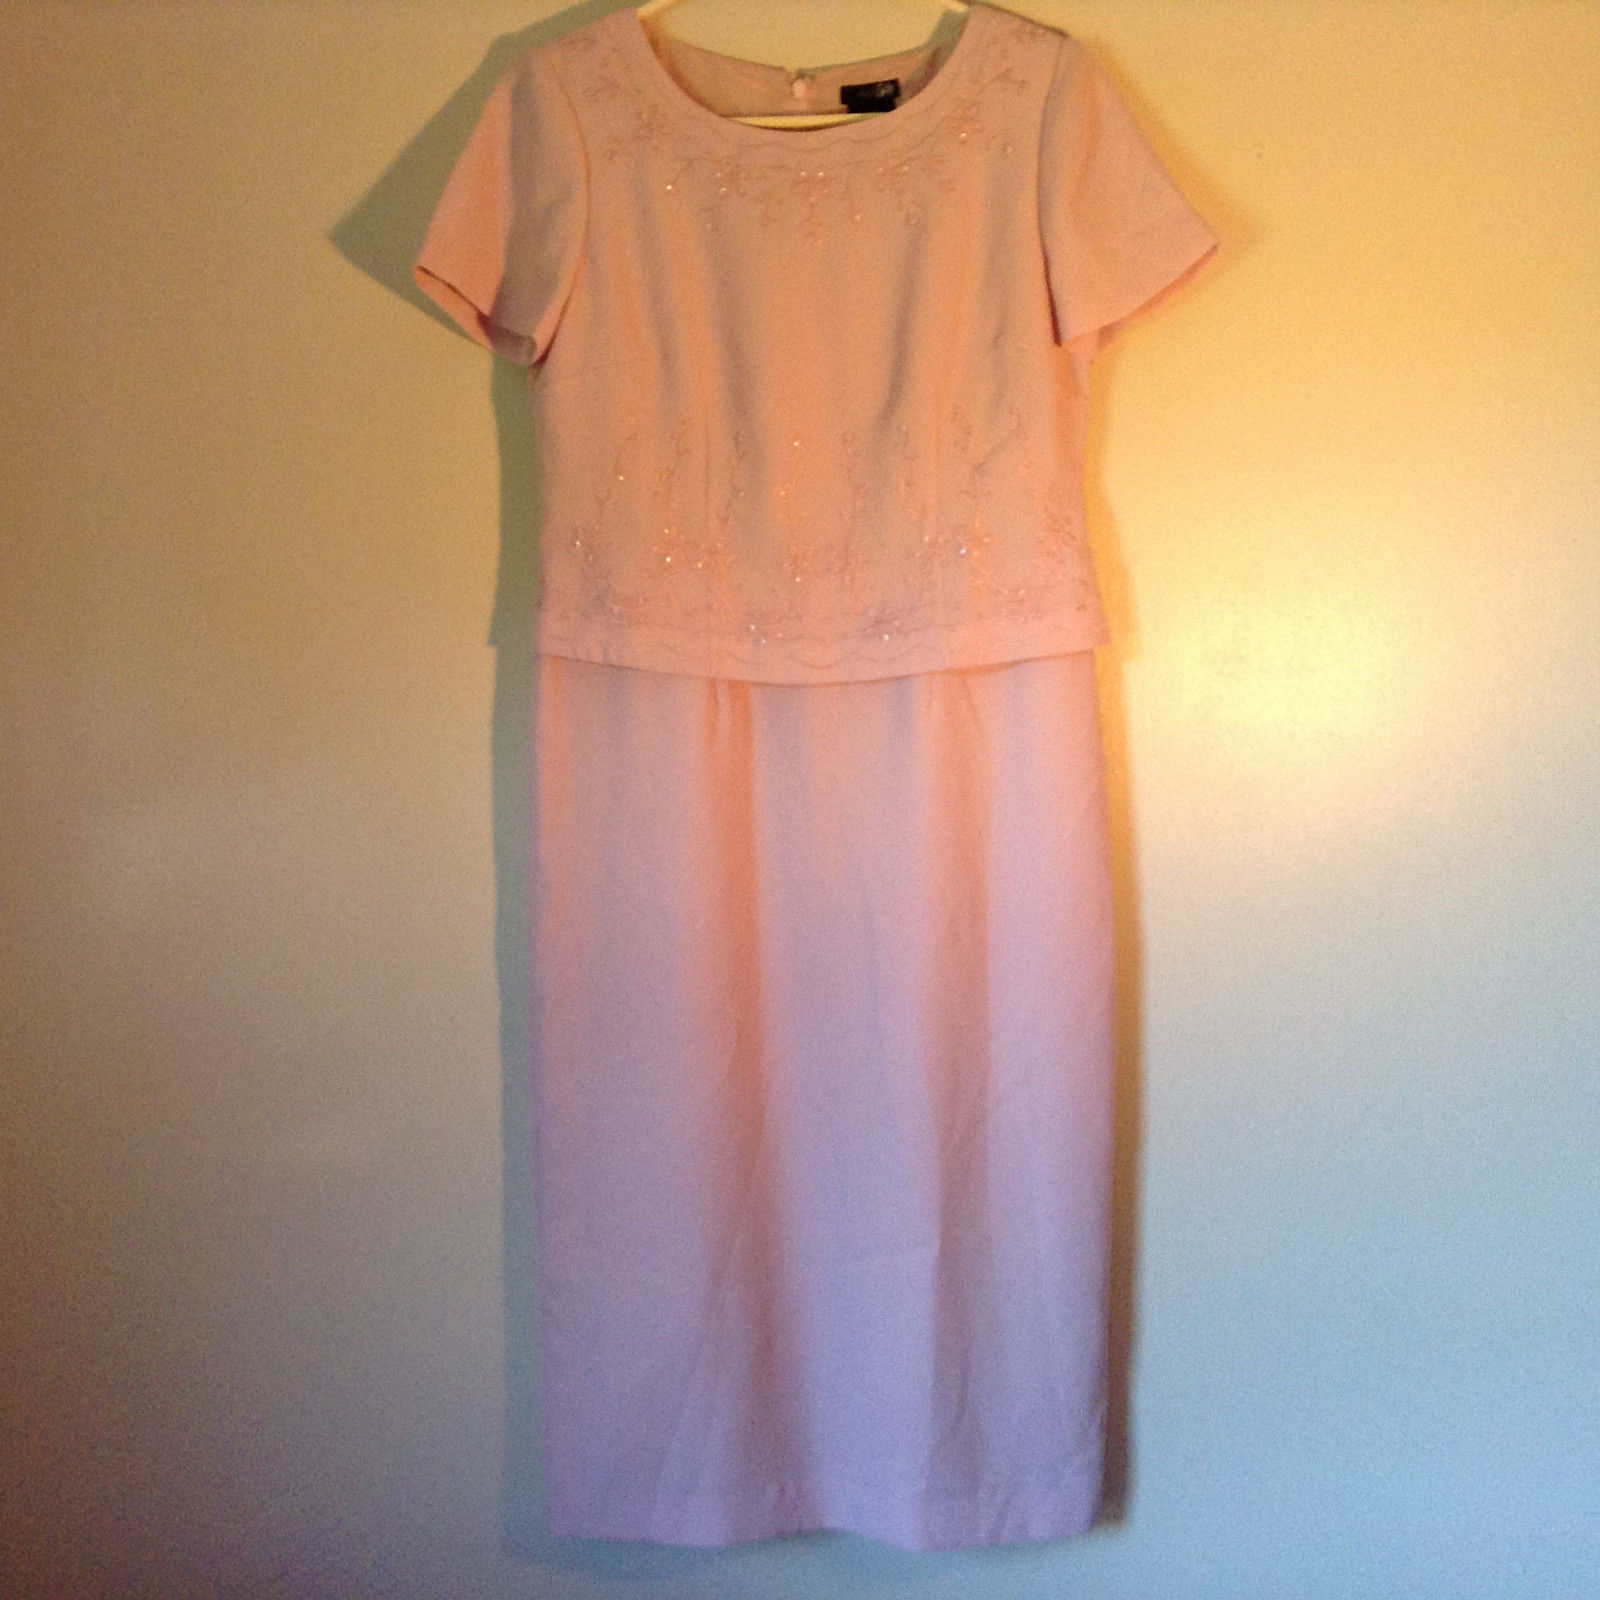 Elegant Light Dusty Rose Pink Dress by East 5th Petite Size 6P Double Layered